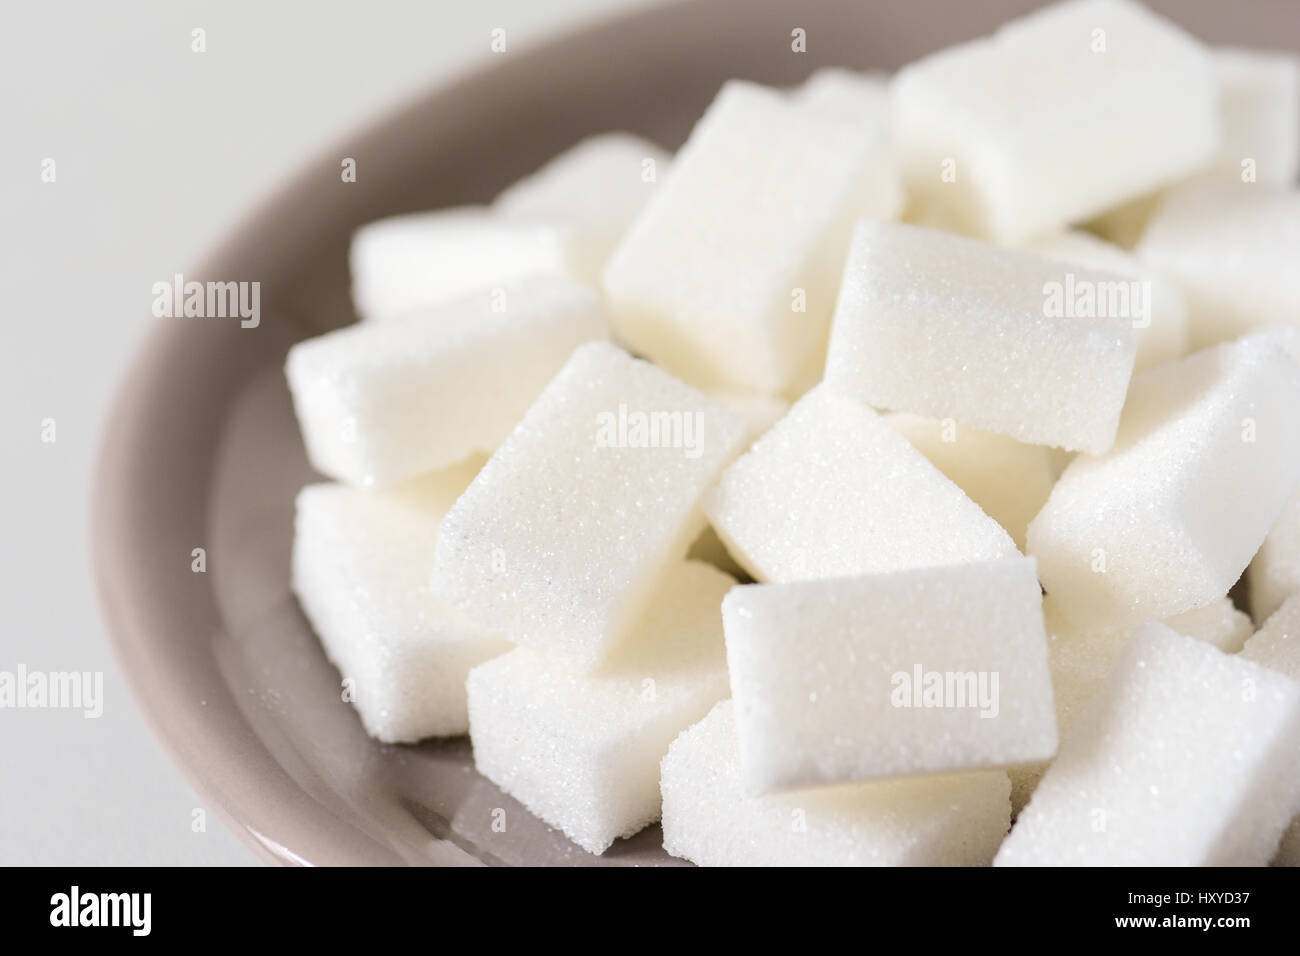 Closeup of a pile of cubes of white refined sugar - Stock Image